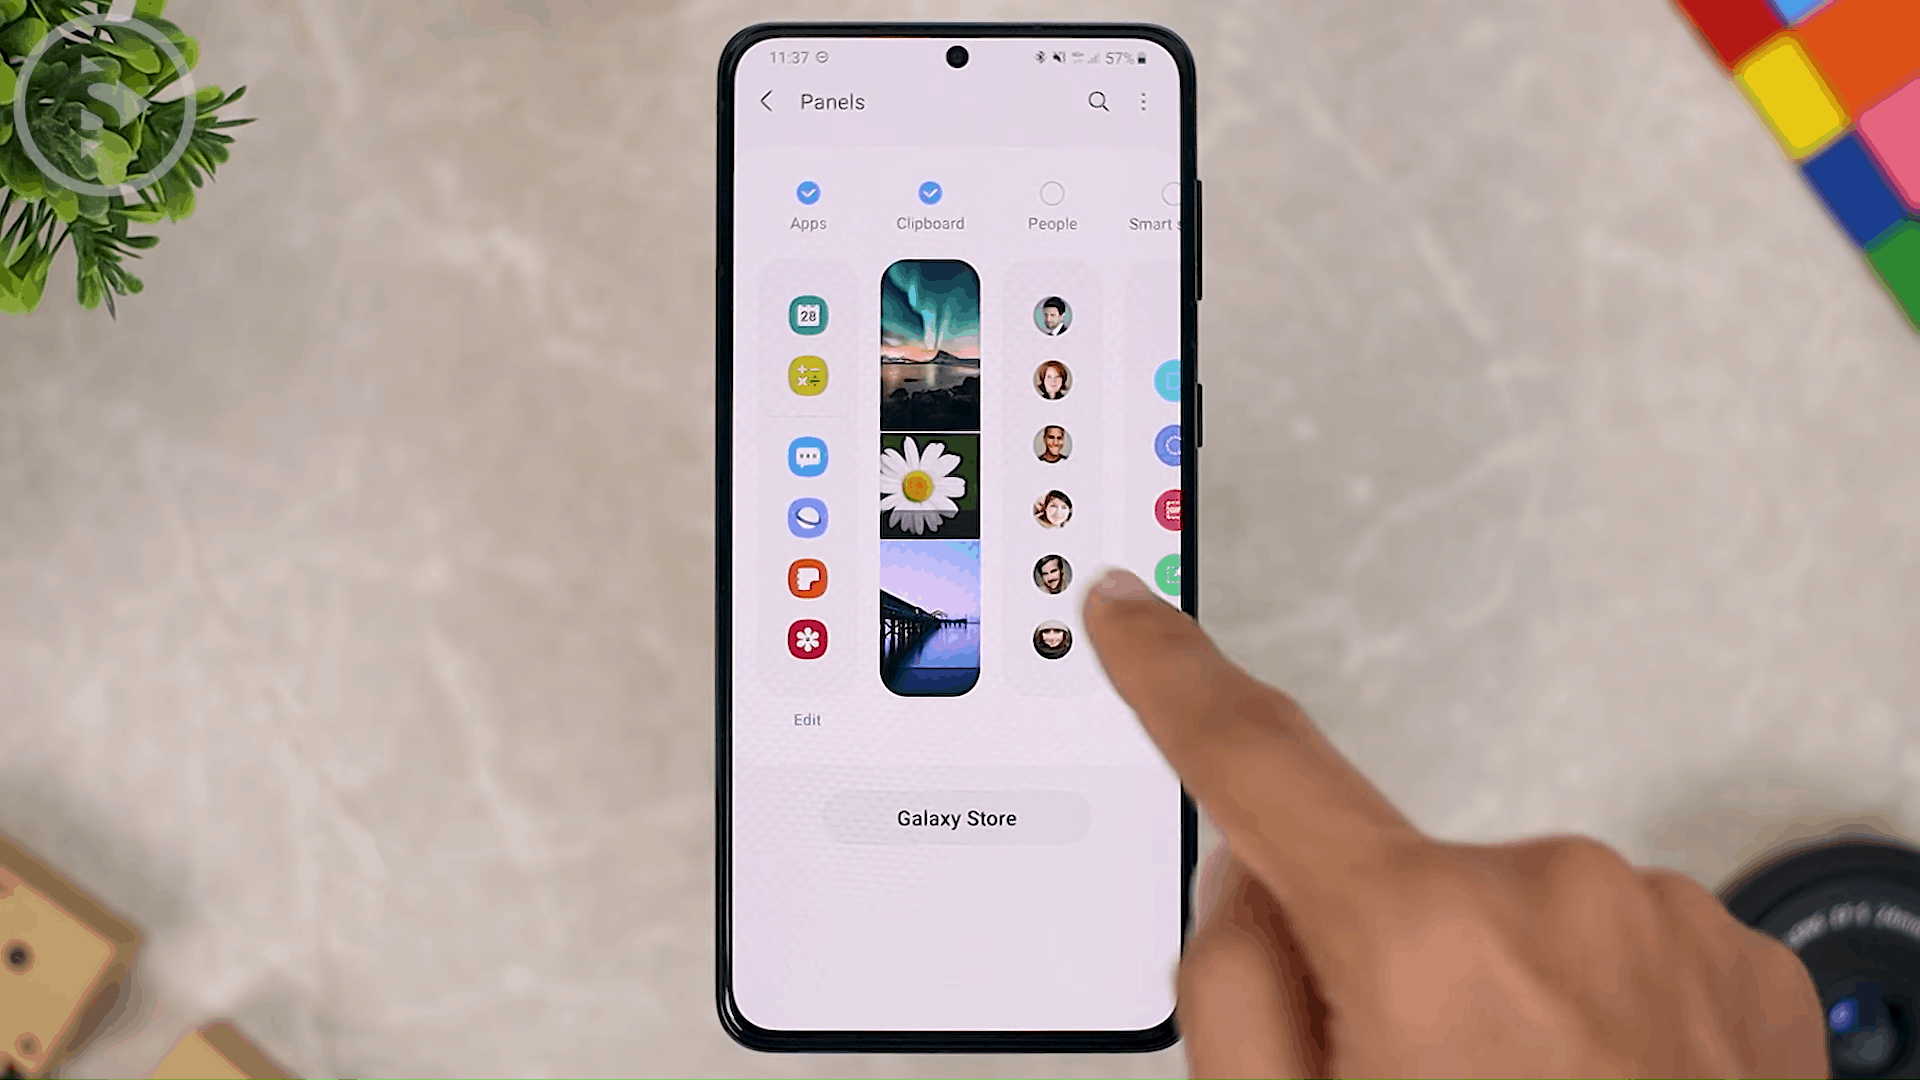 Show Clipboard Shortcuts on Edge Panel - 8 New and Cool Samsung Features in One UI 3.0 and One UI 3.1